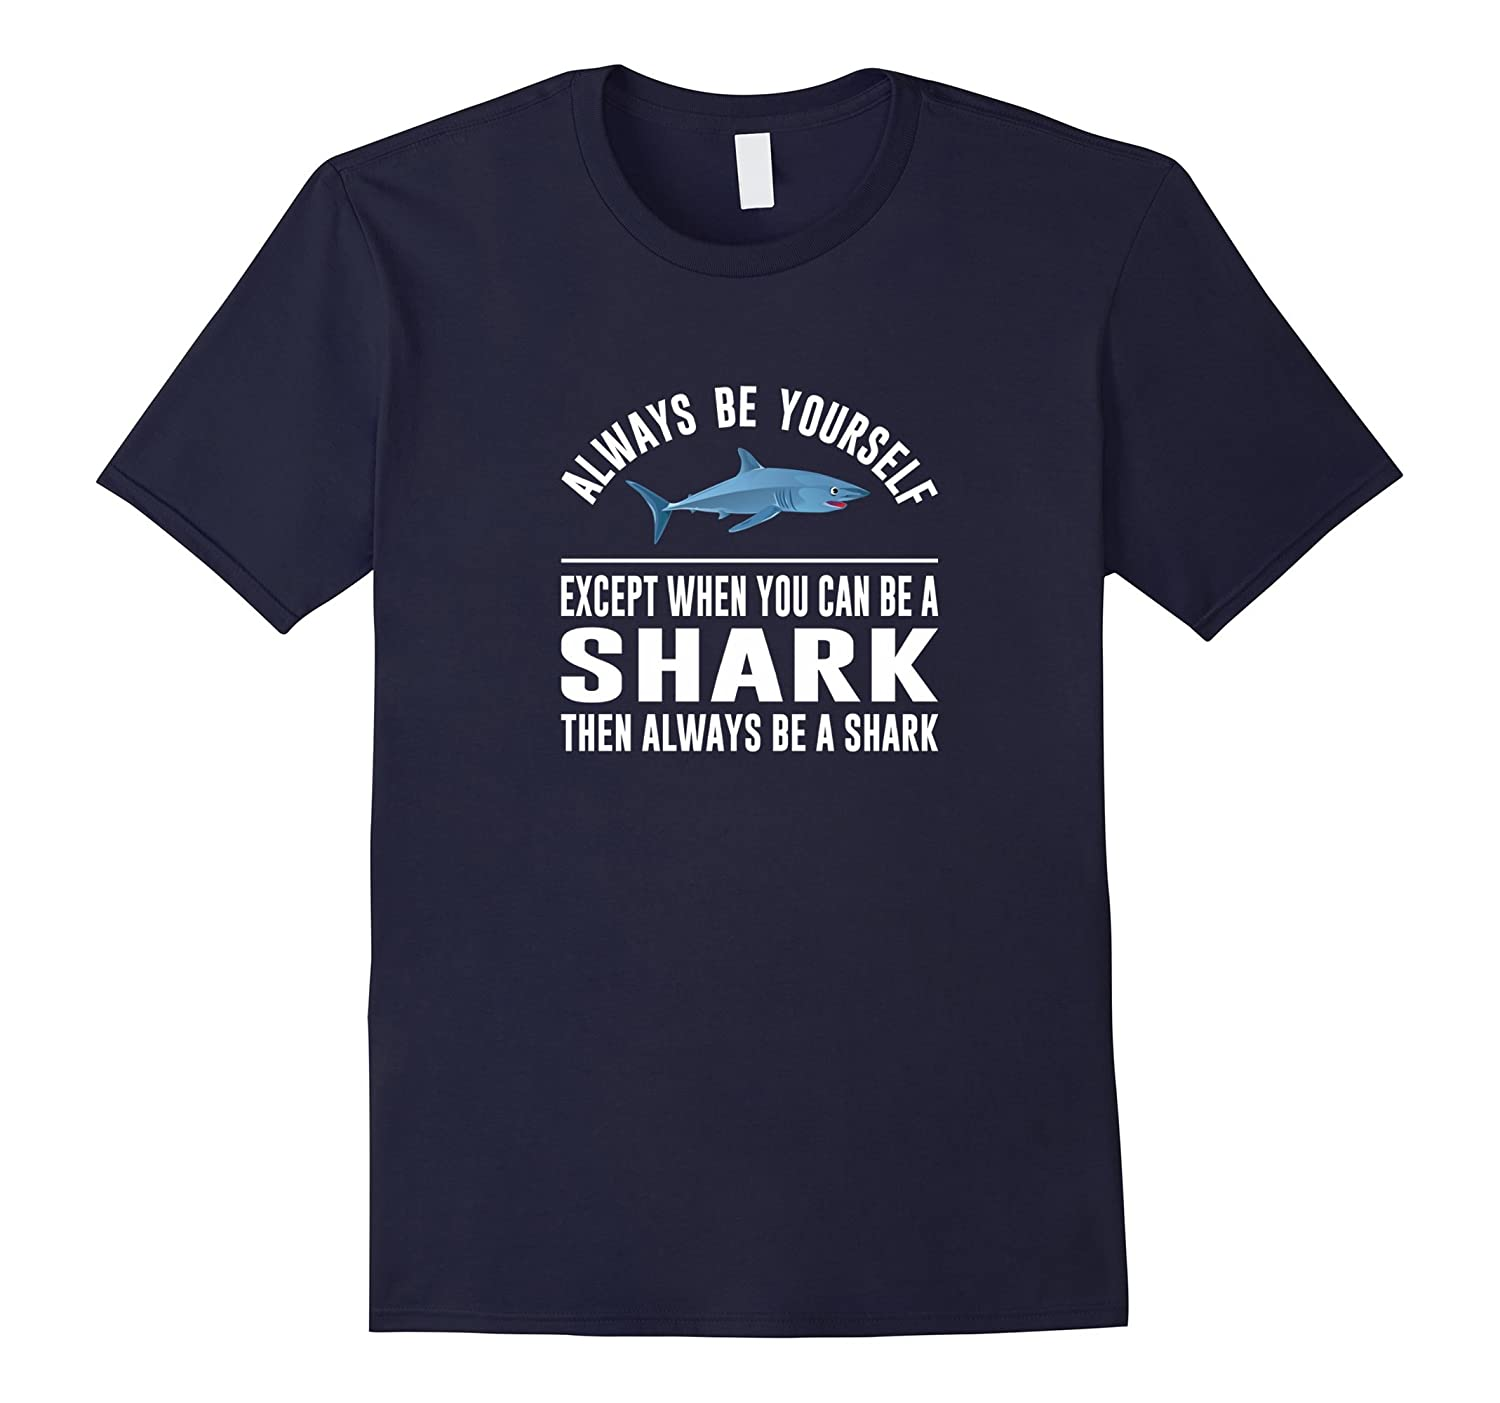 Always Be Yourself - Except When You Can Be a Shark Shirt-RT